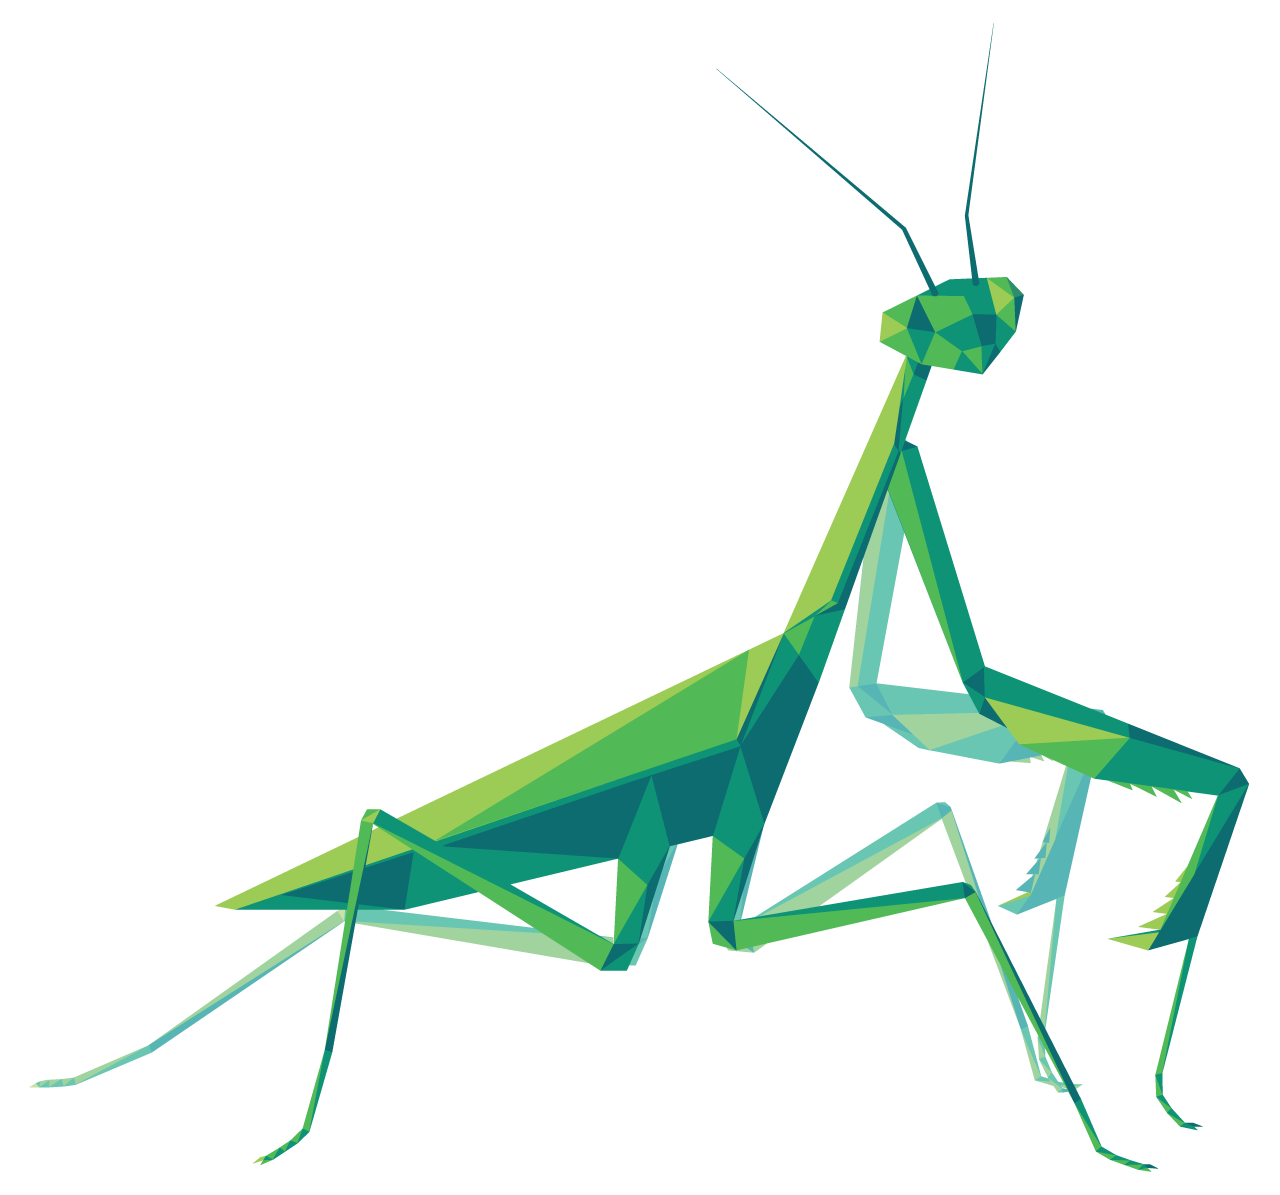 A mantis with clearly visible polygonal faces.